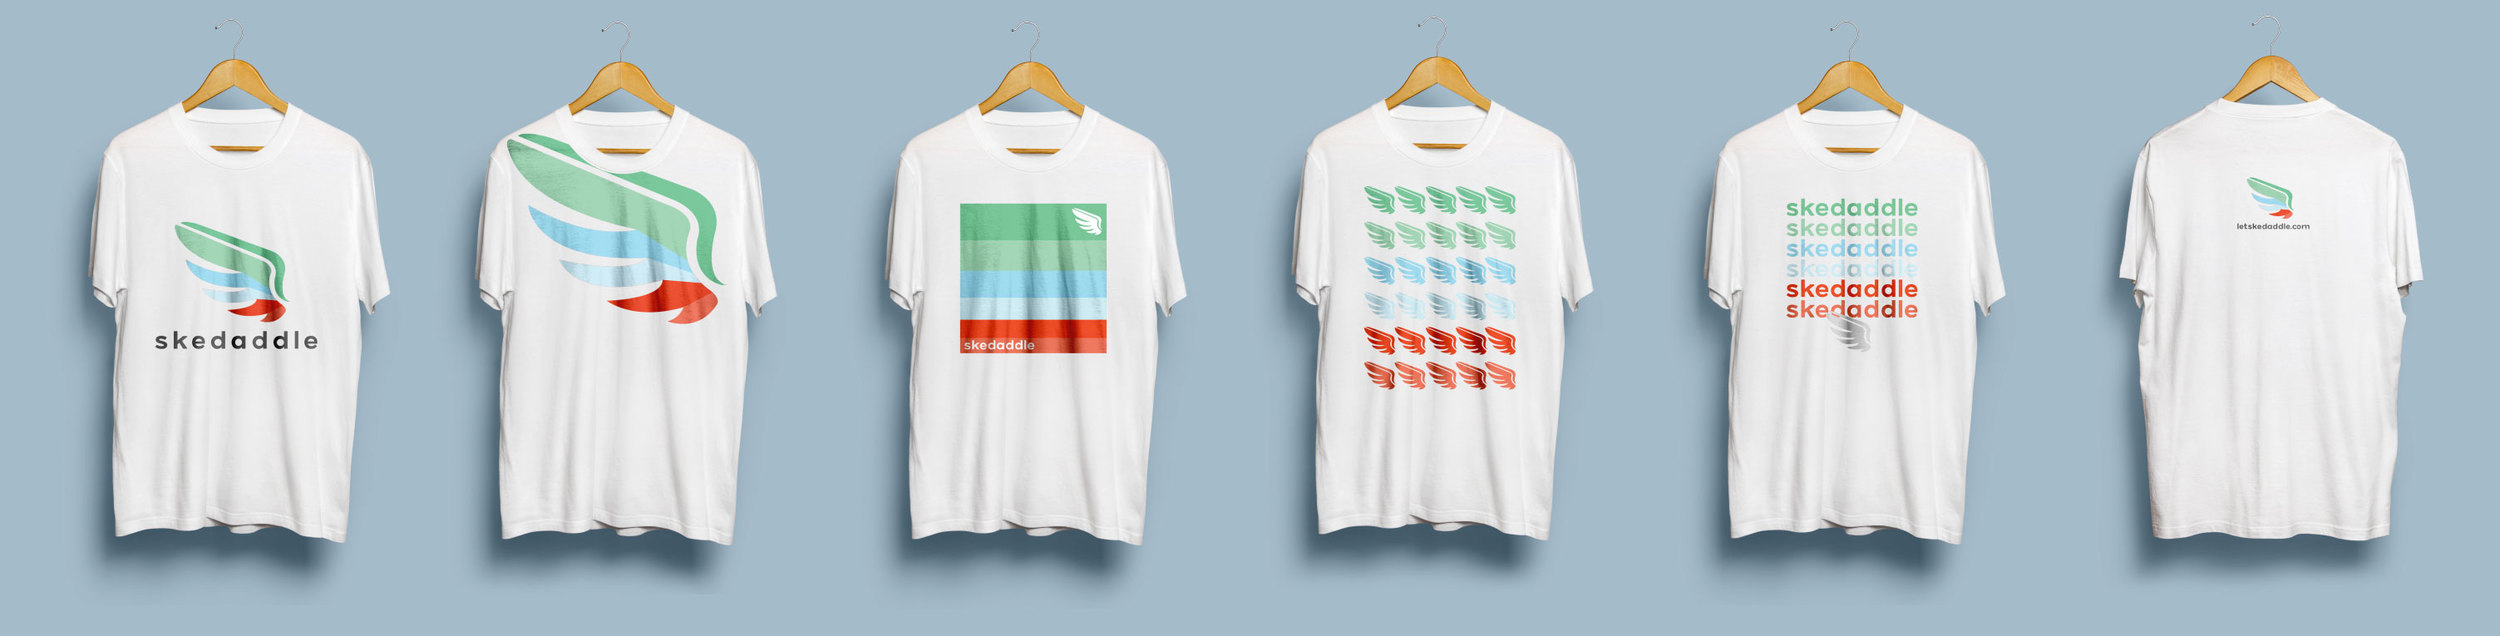 Initial t-shirt designs, we ended up going with #3 and the last one on the back.